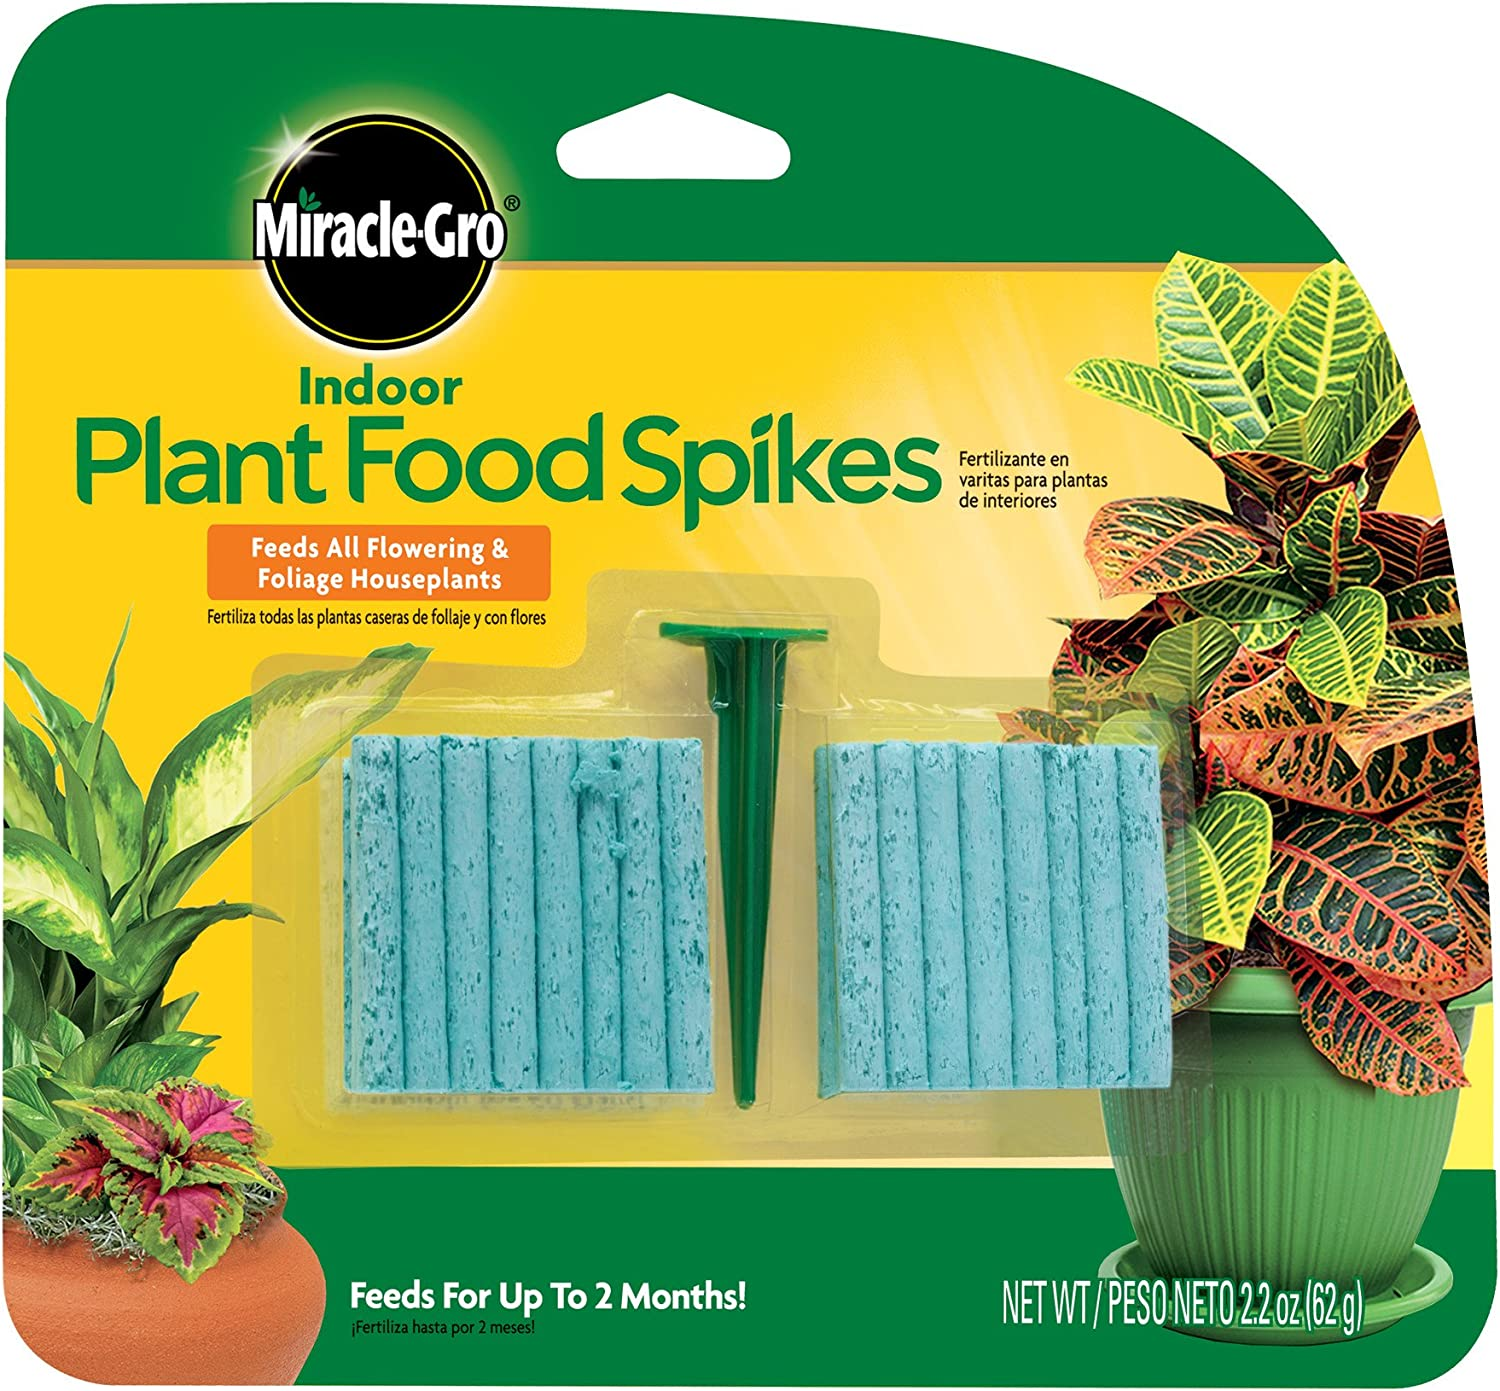 Miracle-Gro 48-Spikes Indoor Plant Food